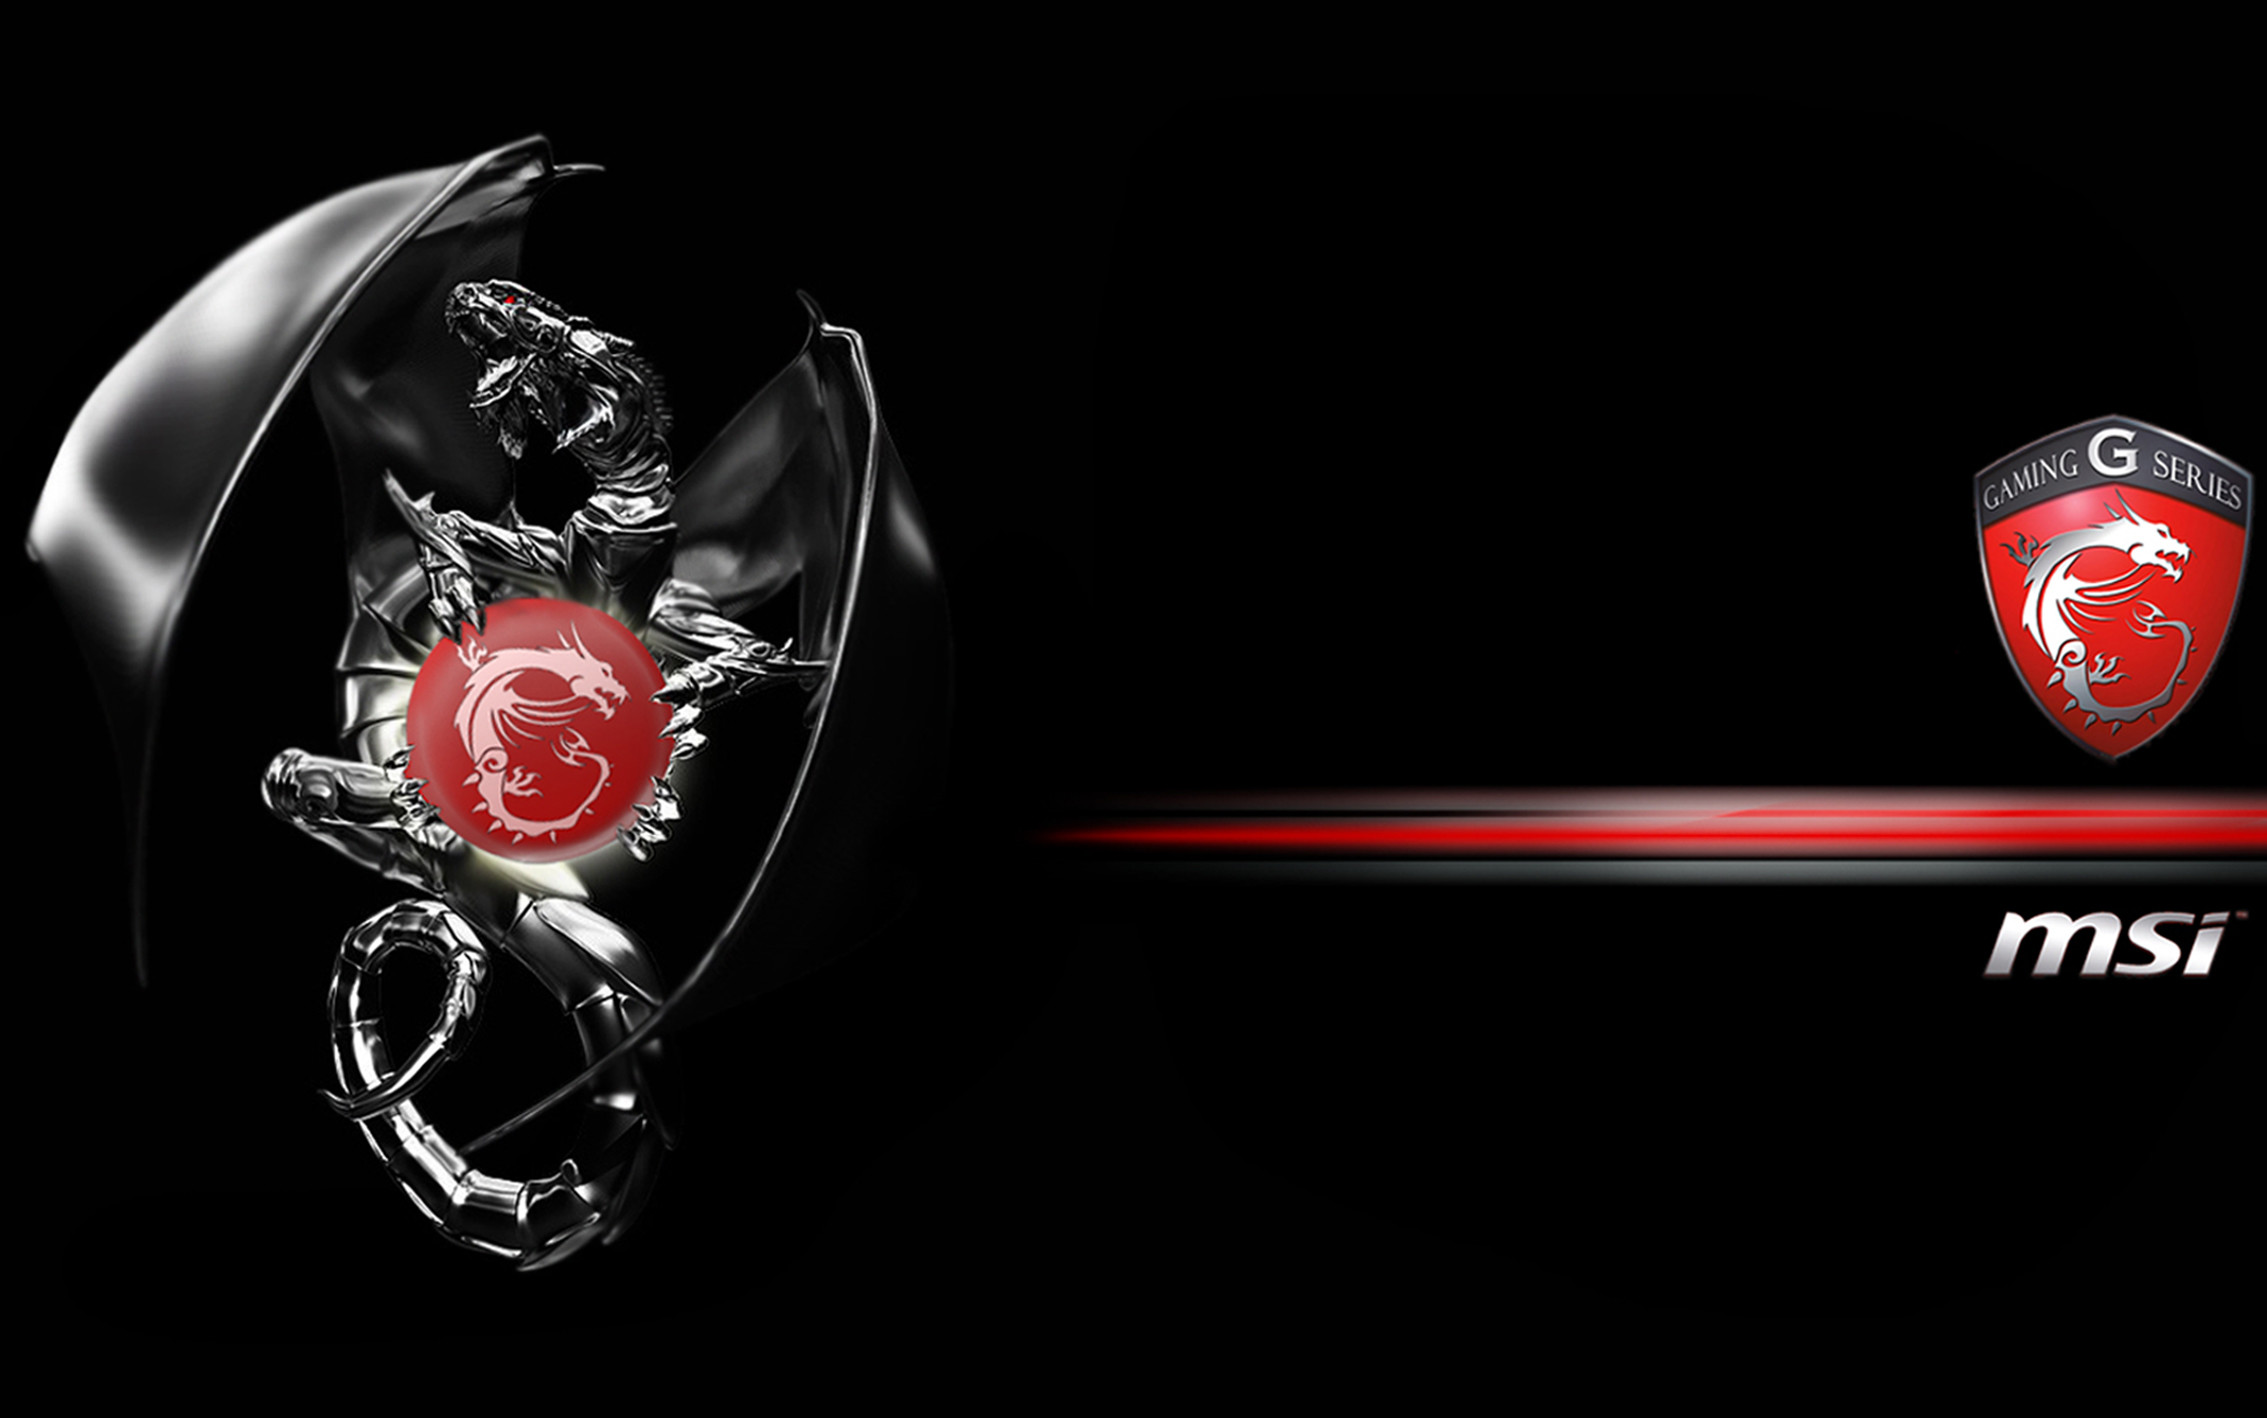 2267x1418 wallpaper.wiki-Msi-Picture-HD-PIC-WPD001684